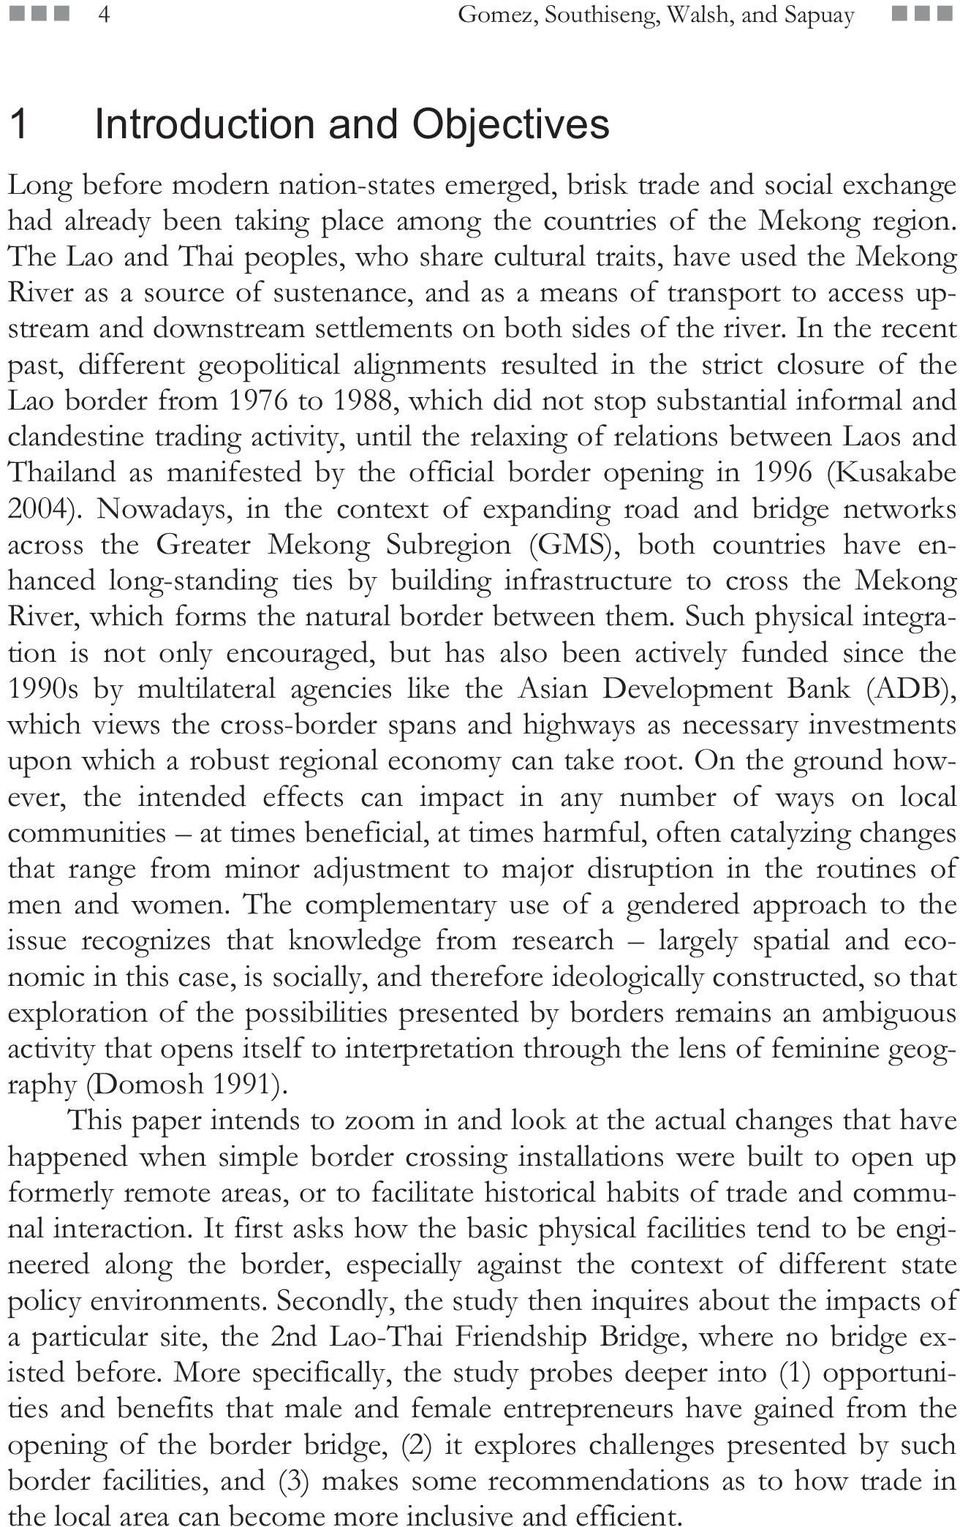 The Lao and Thai peoples, who share cultural traits, have used the Mekong River as a source of sustenance, and as a means of transport to access upstream and downstream settlements on both sides of